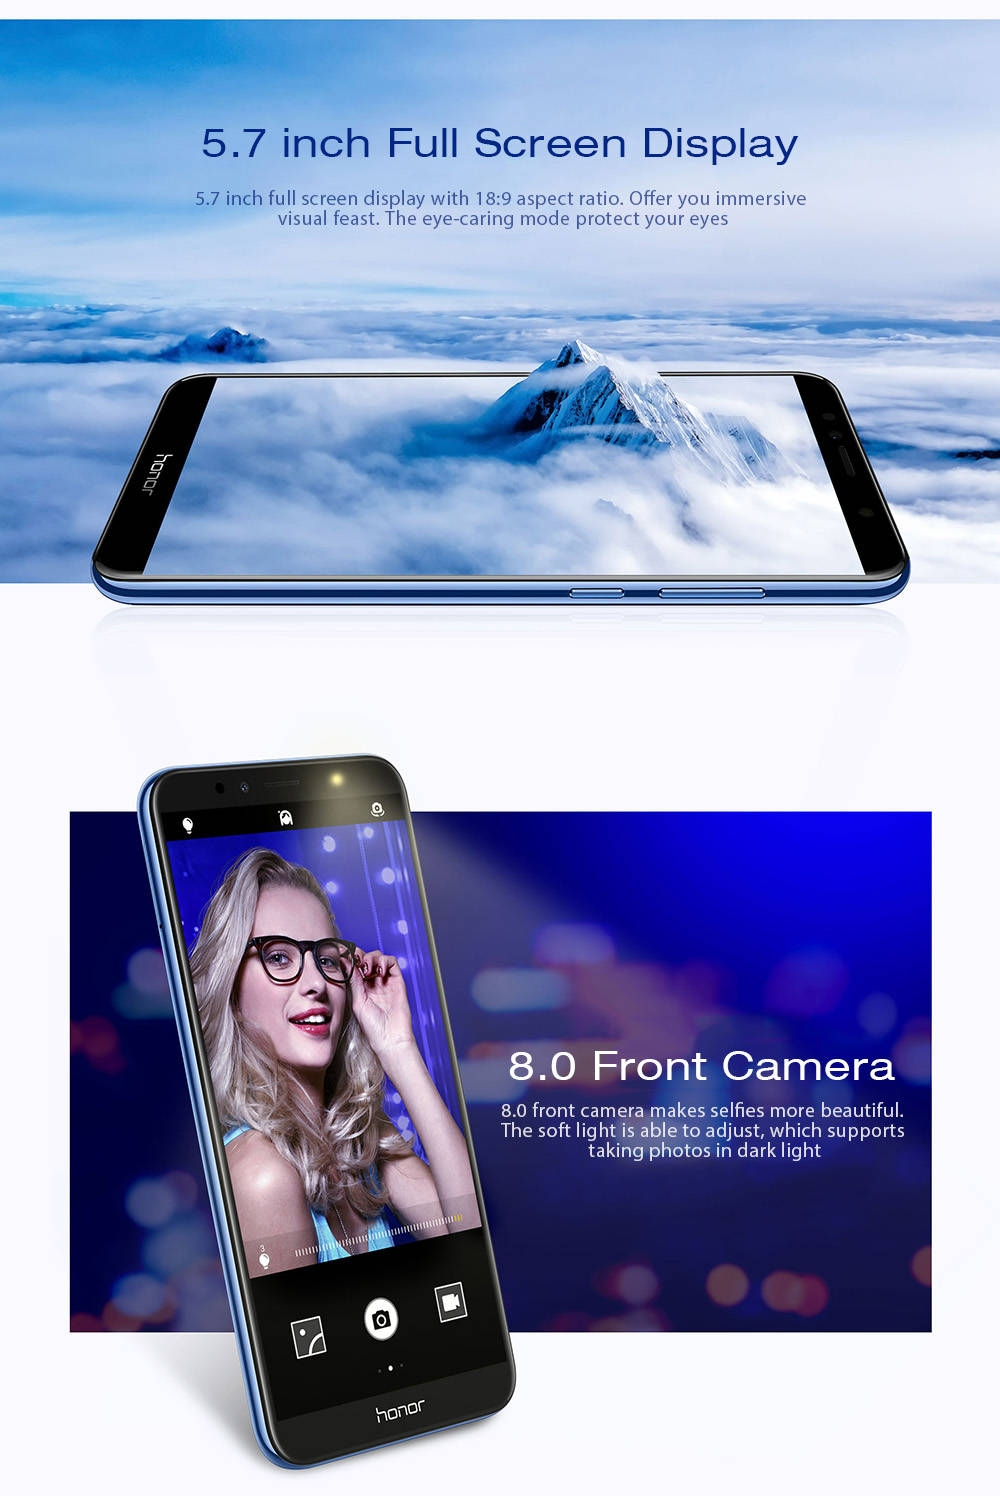 HUAWEI Honor 7A 4G Phablet 5.7 inch Android 8.0 Qualcomm Snapdragon 430 Octa Core 1.4GHz 3GB RAM 32GB ROM OTG OTA